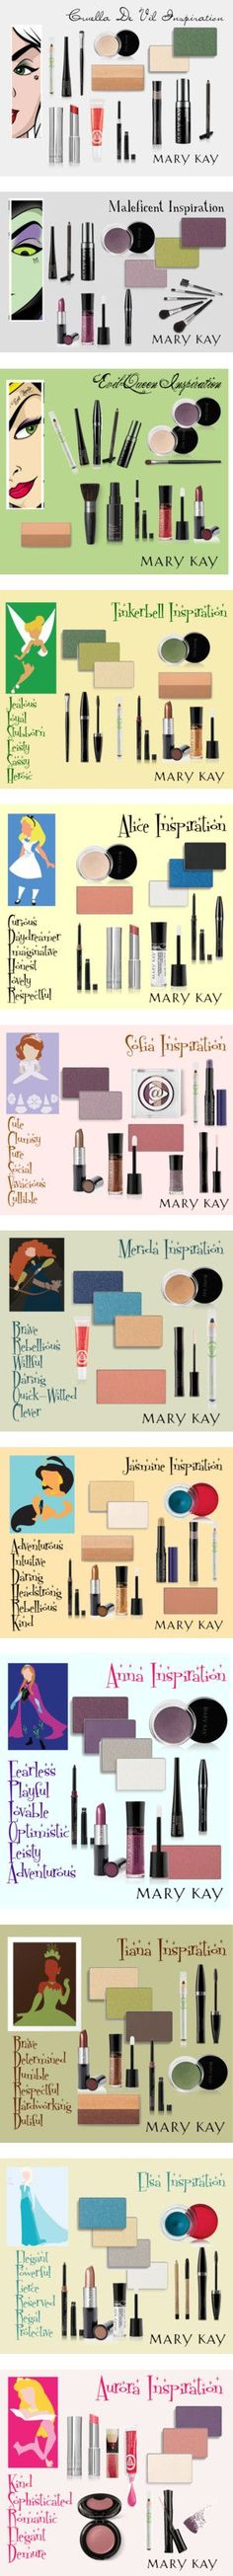 Oh. My. Goodness.  I love Disney and I LOVE these looks that can be achieved with these awesome Mary Kay products!  Shop with me online to earn some awesome perks!  Free shipping on order over $75 and a FREE Deluxe Mini gift when you spend at least $40!  https://www.marykay.com/aturner12491